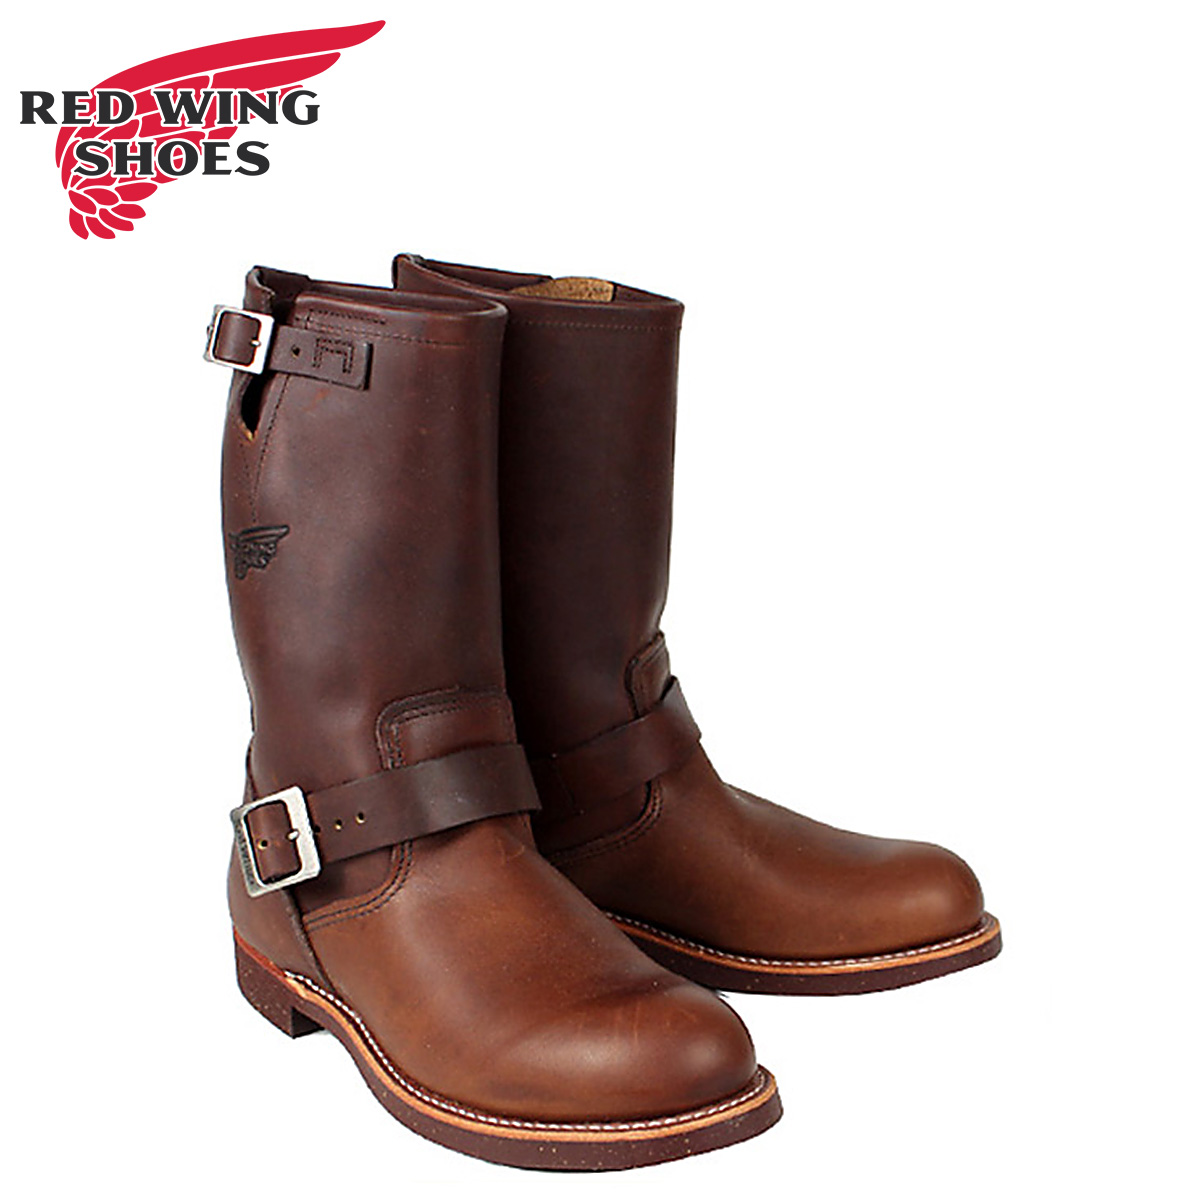 ALLSPORTS | Rakuten Global Market: Redwing RED WING Engineer Boots ...